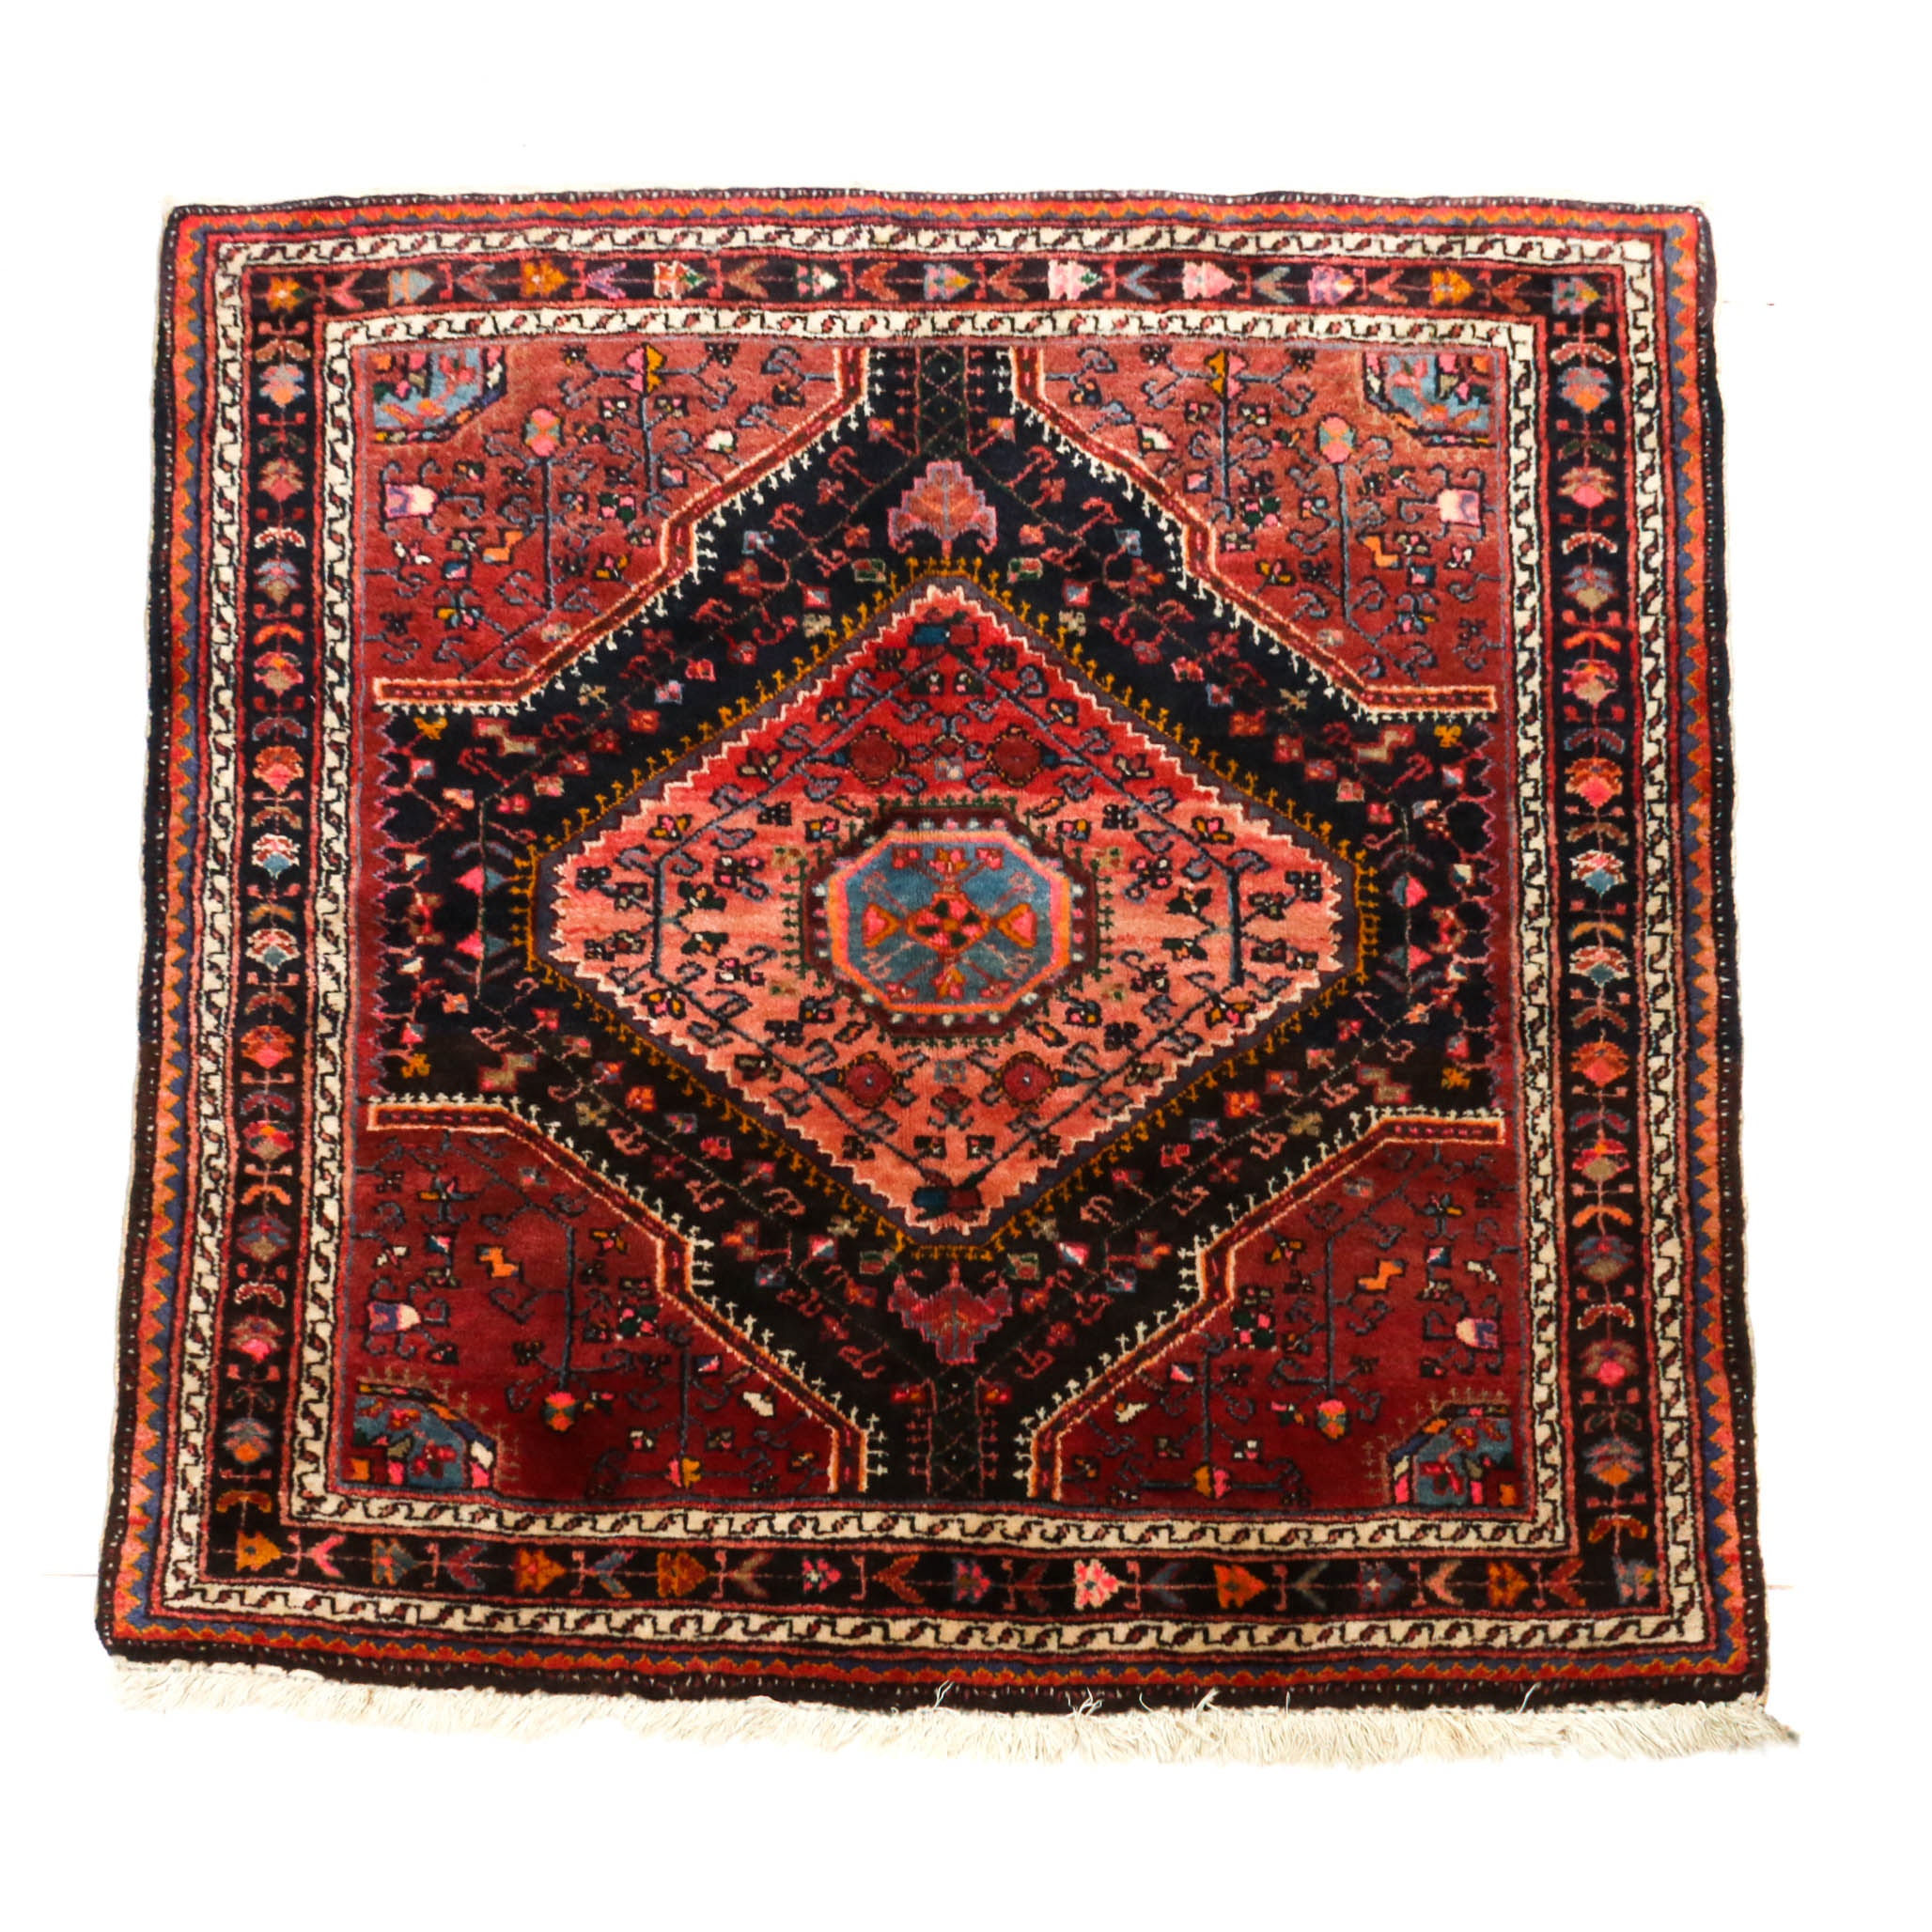 4'8 x 4'11 Hand-Knotted Persian Malayer Wool Rug, Circa 1930